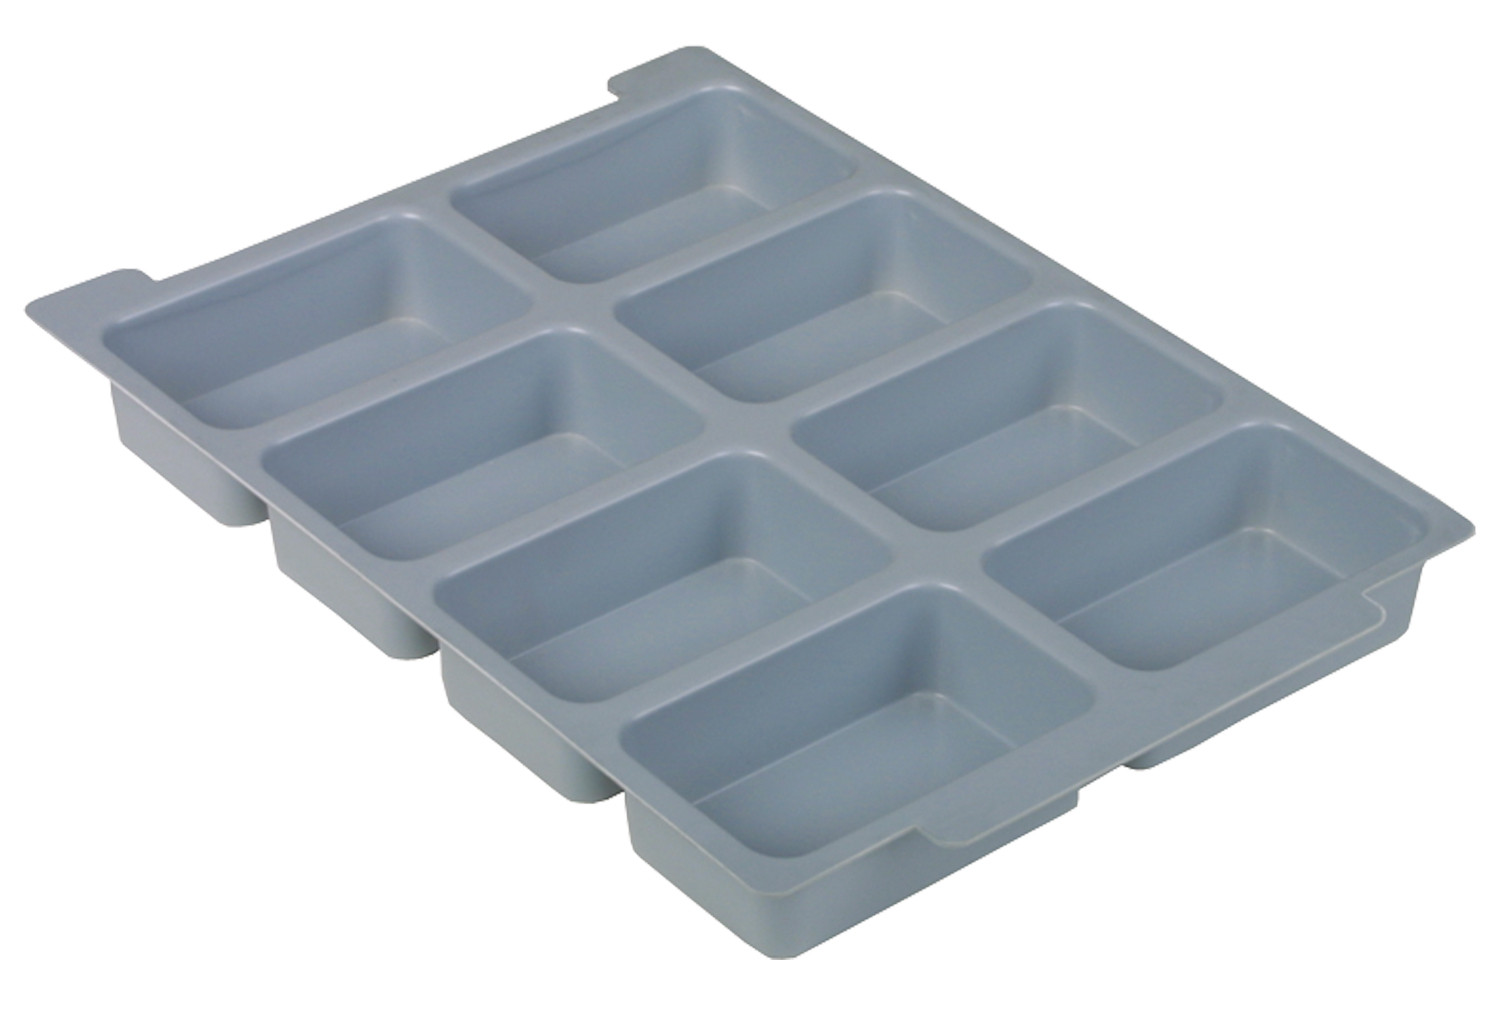 Pack of 6 Dividers For Gratnell Shallow Trays (8 Compartments)